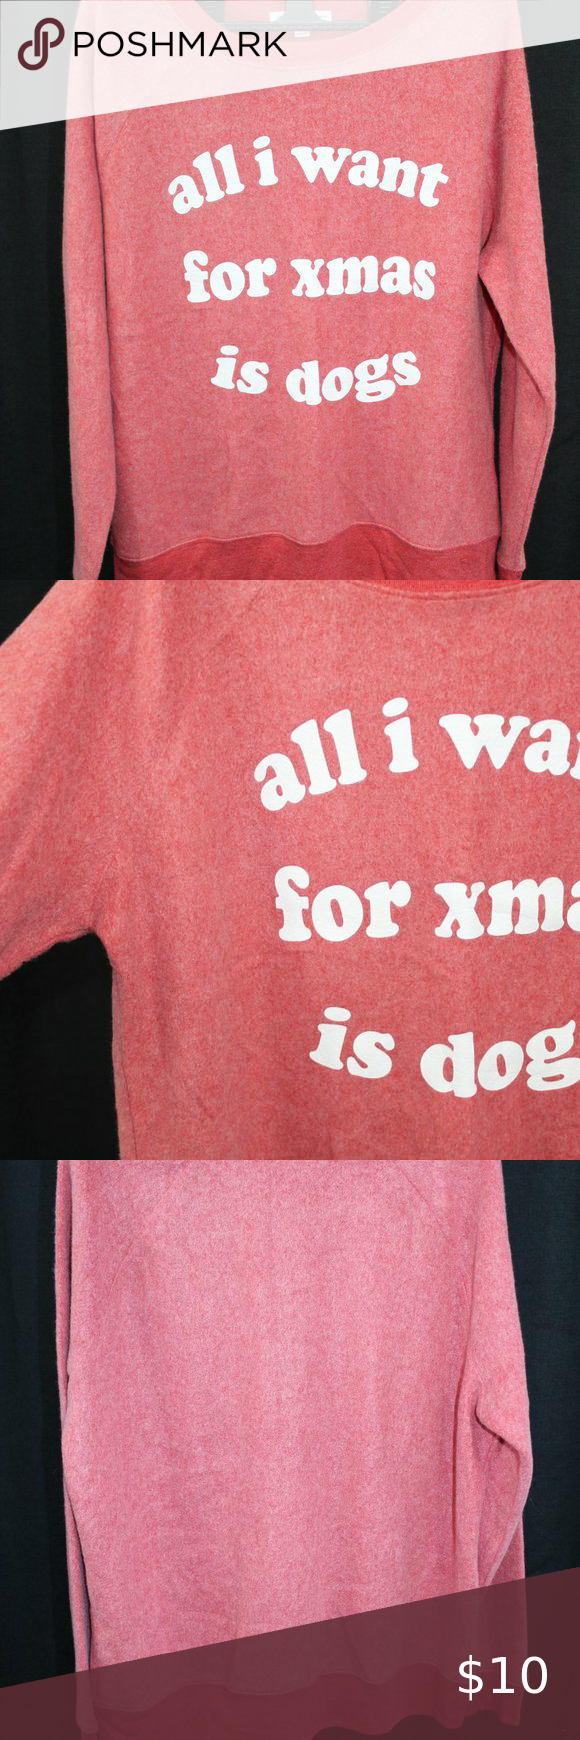 Winter Pajama Set All I Want For Xmas Is Dogs Super Soft Red Pajama Set Long Sleeve Shirt And Shorts Original In 2020 Pajama Set Winter Pajamas Long Sleeve Shirts